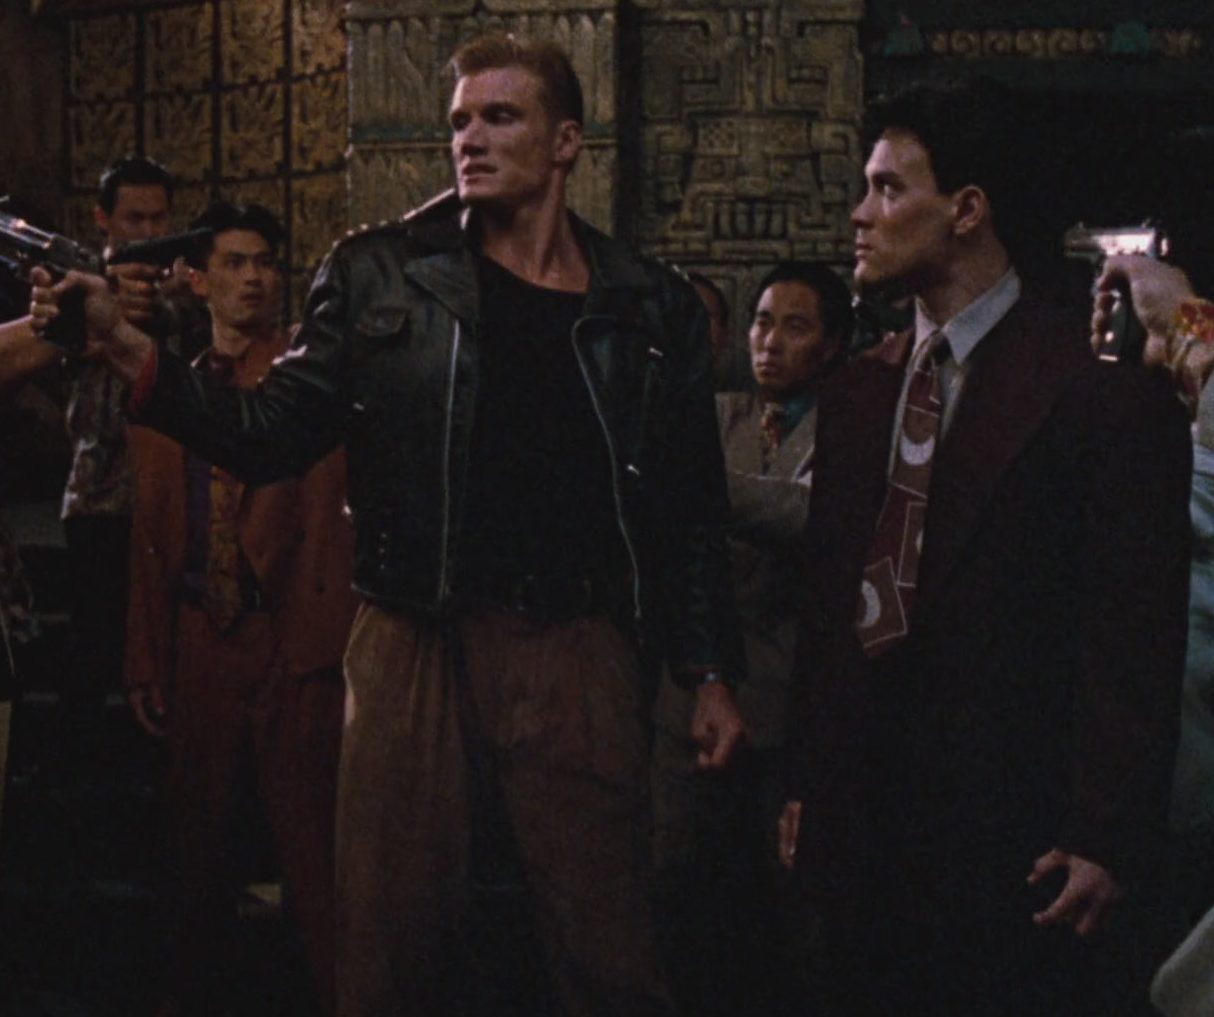 showdown in little tokyo 1991 e1618560798807 30 Films From The 90s That Are So Bad They're Actually Good